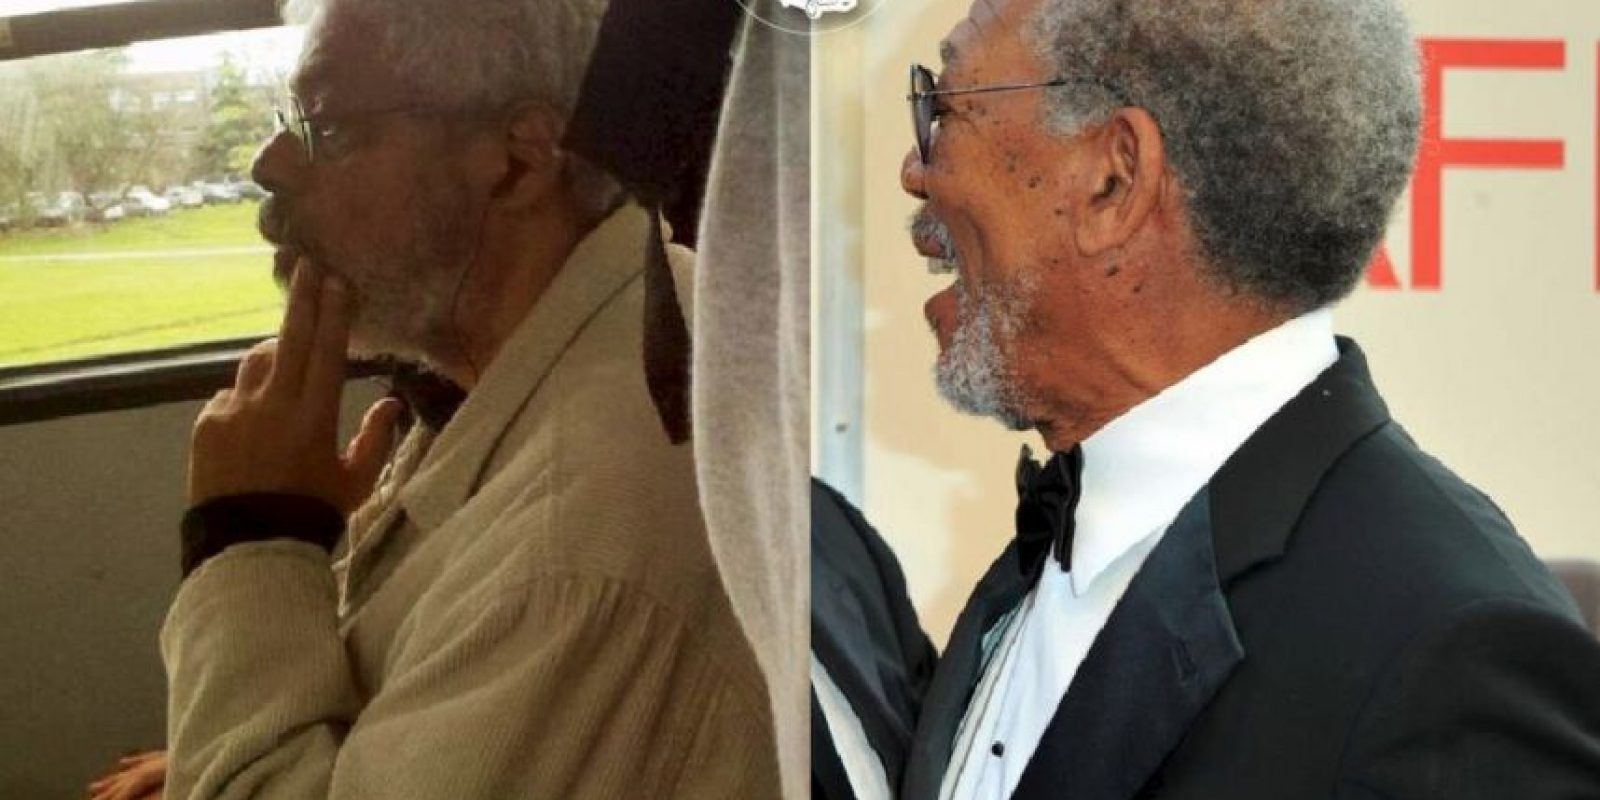 Morgan Freeman Foto: Parecidos De Bondis/Facebook